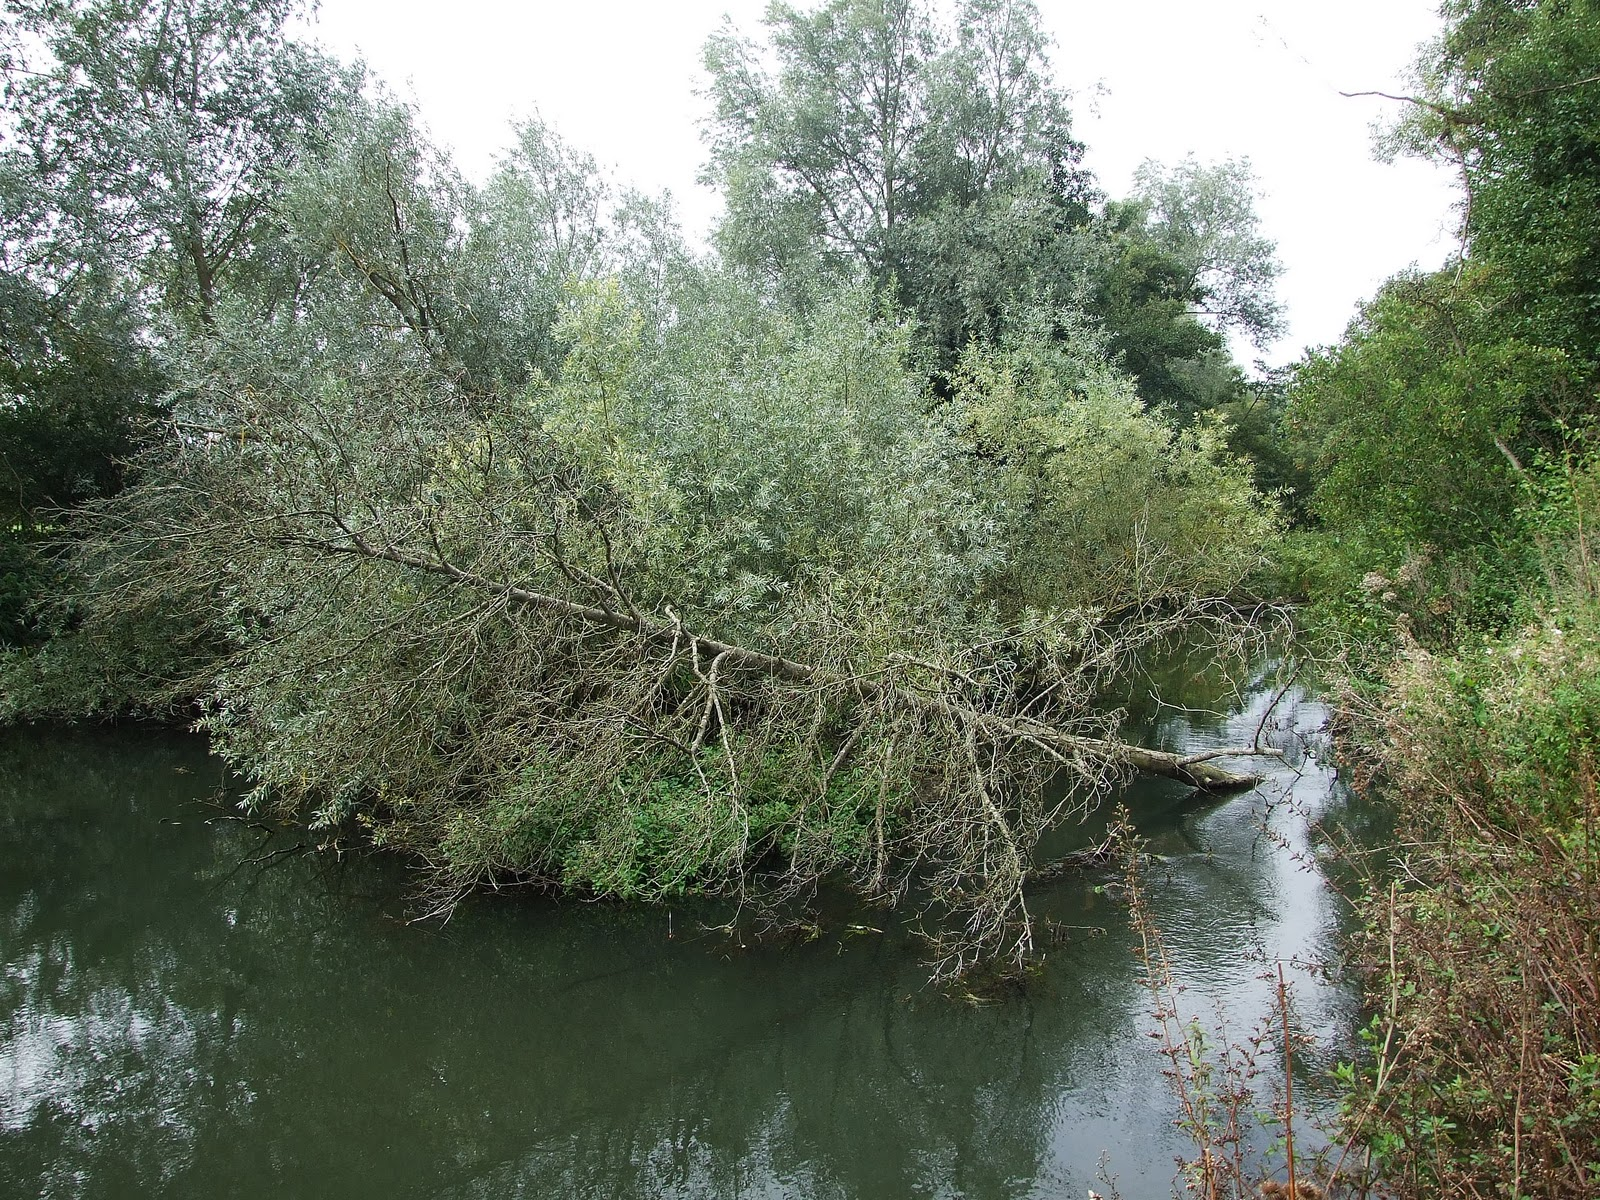 Canoeing and Kayaking on The River Kennet: October 2010